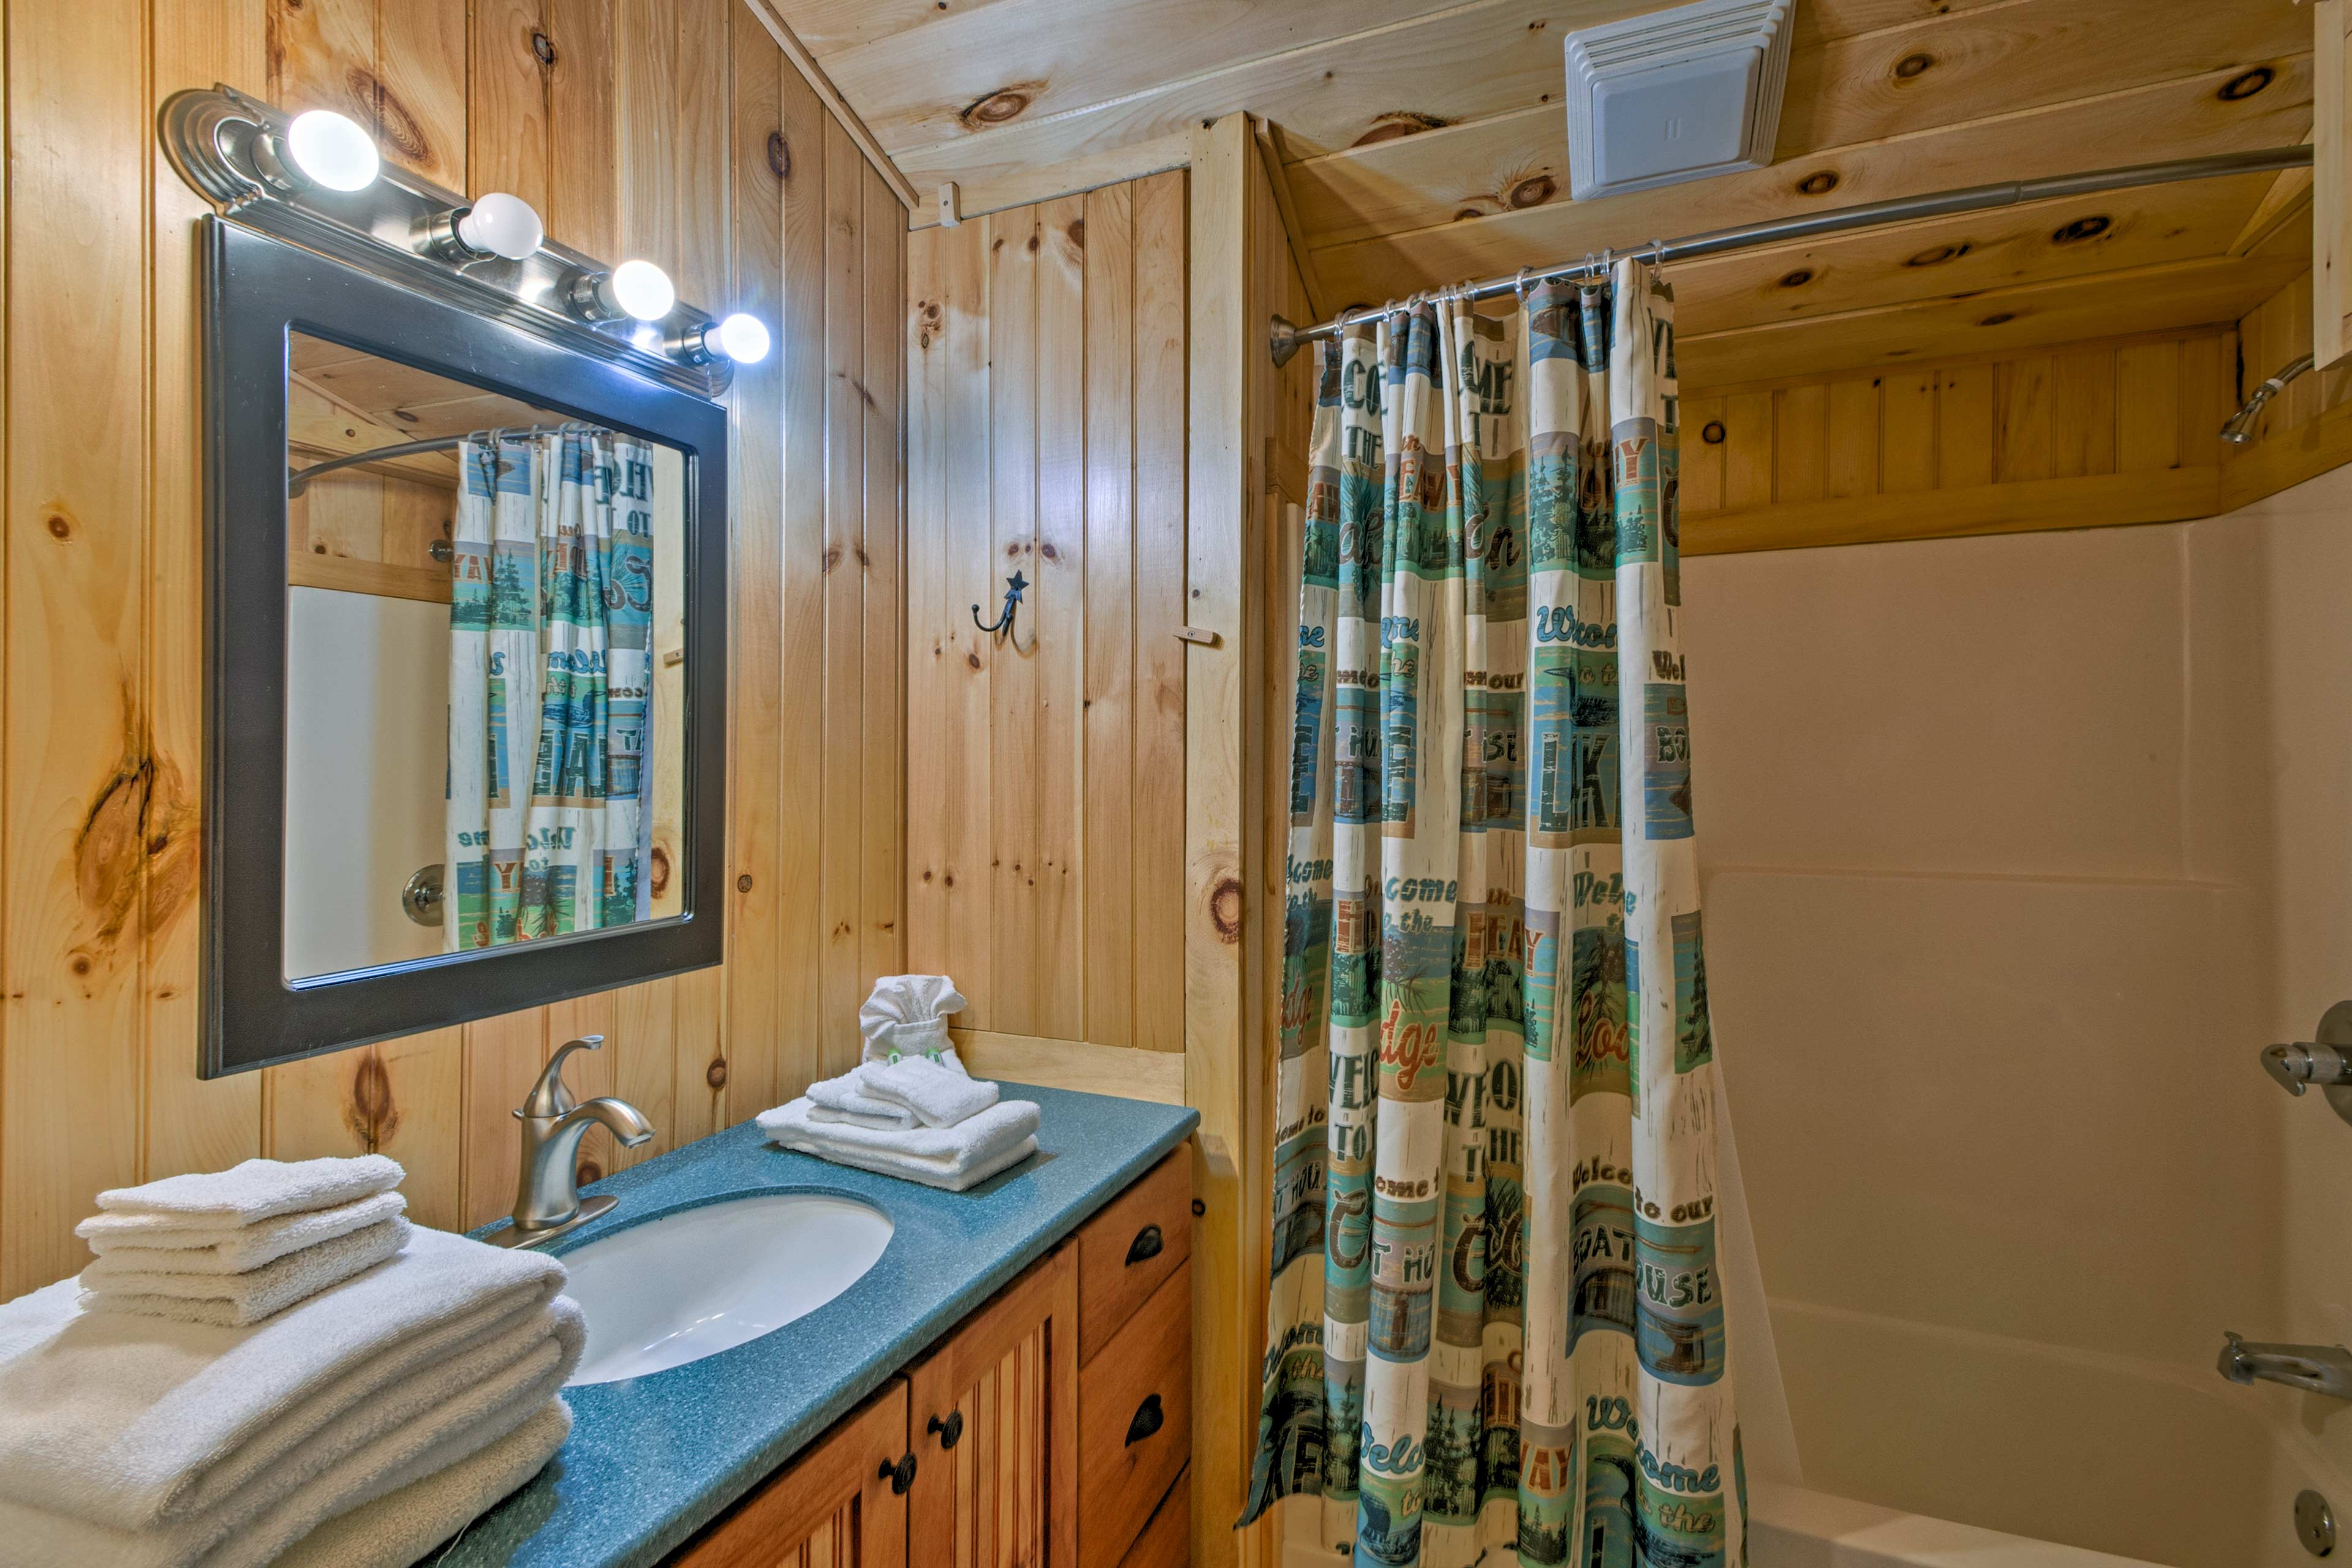 After a day outdoors, enjoy a cleansing shower in the full bathroom.